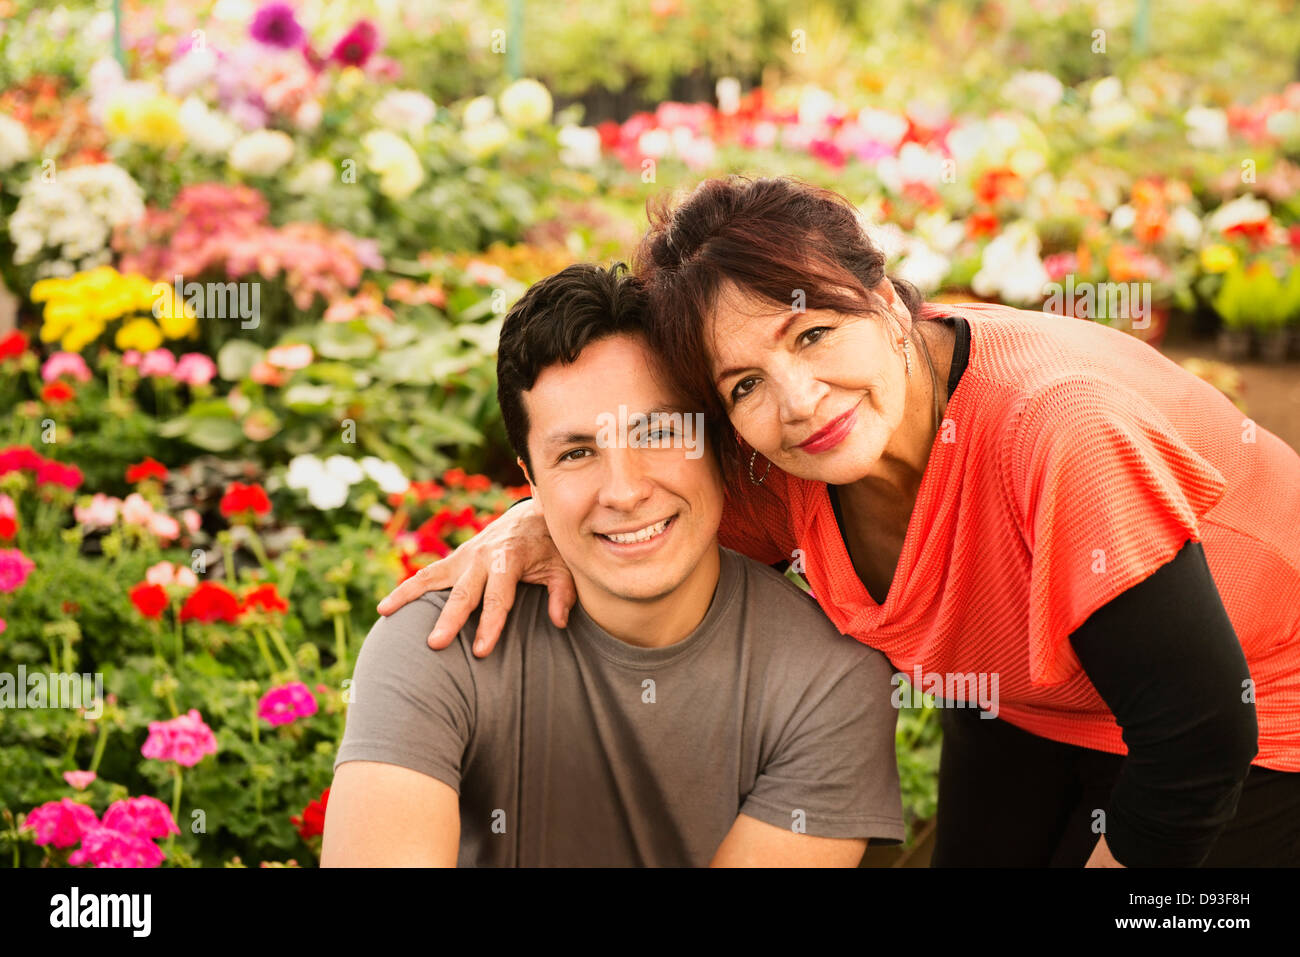 Hispanic couple smiling in field Banque D'Images